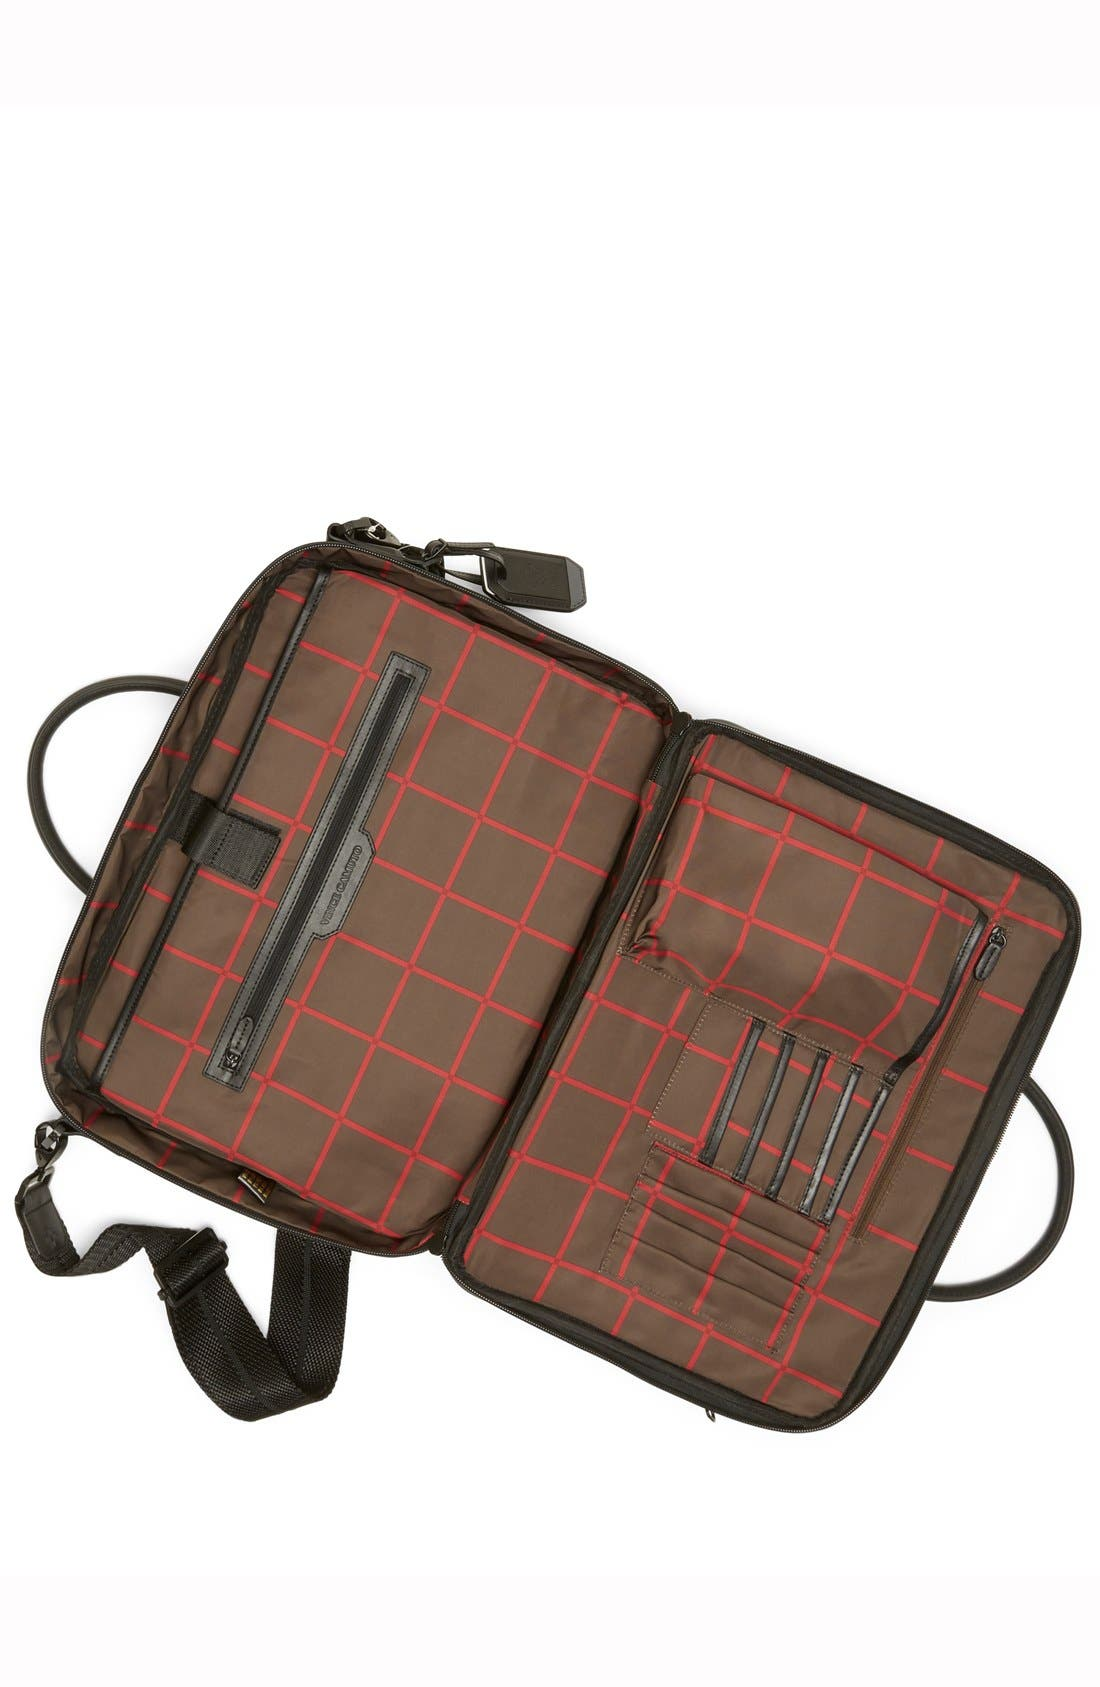 Turin Leather Briefcase,                             Alternate thumbnail 4, color,                             001